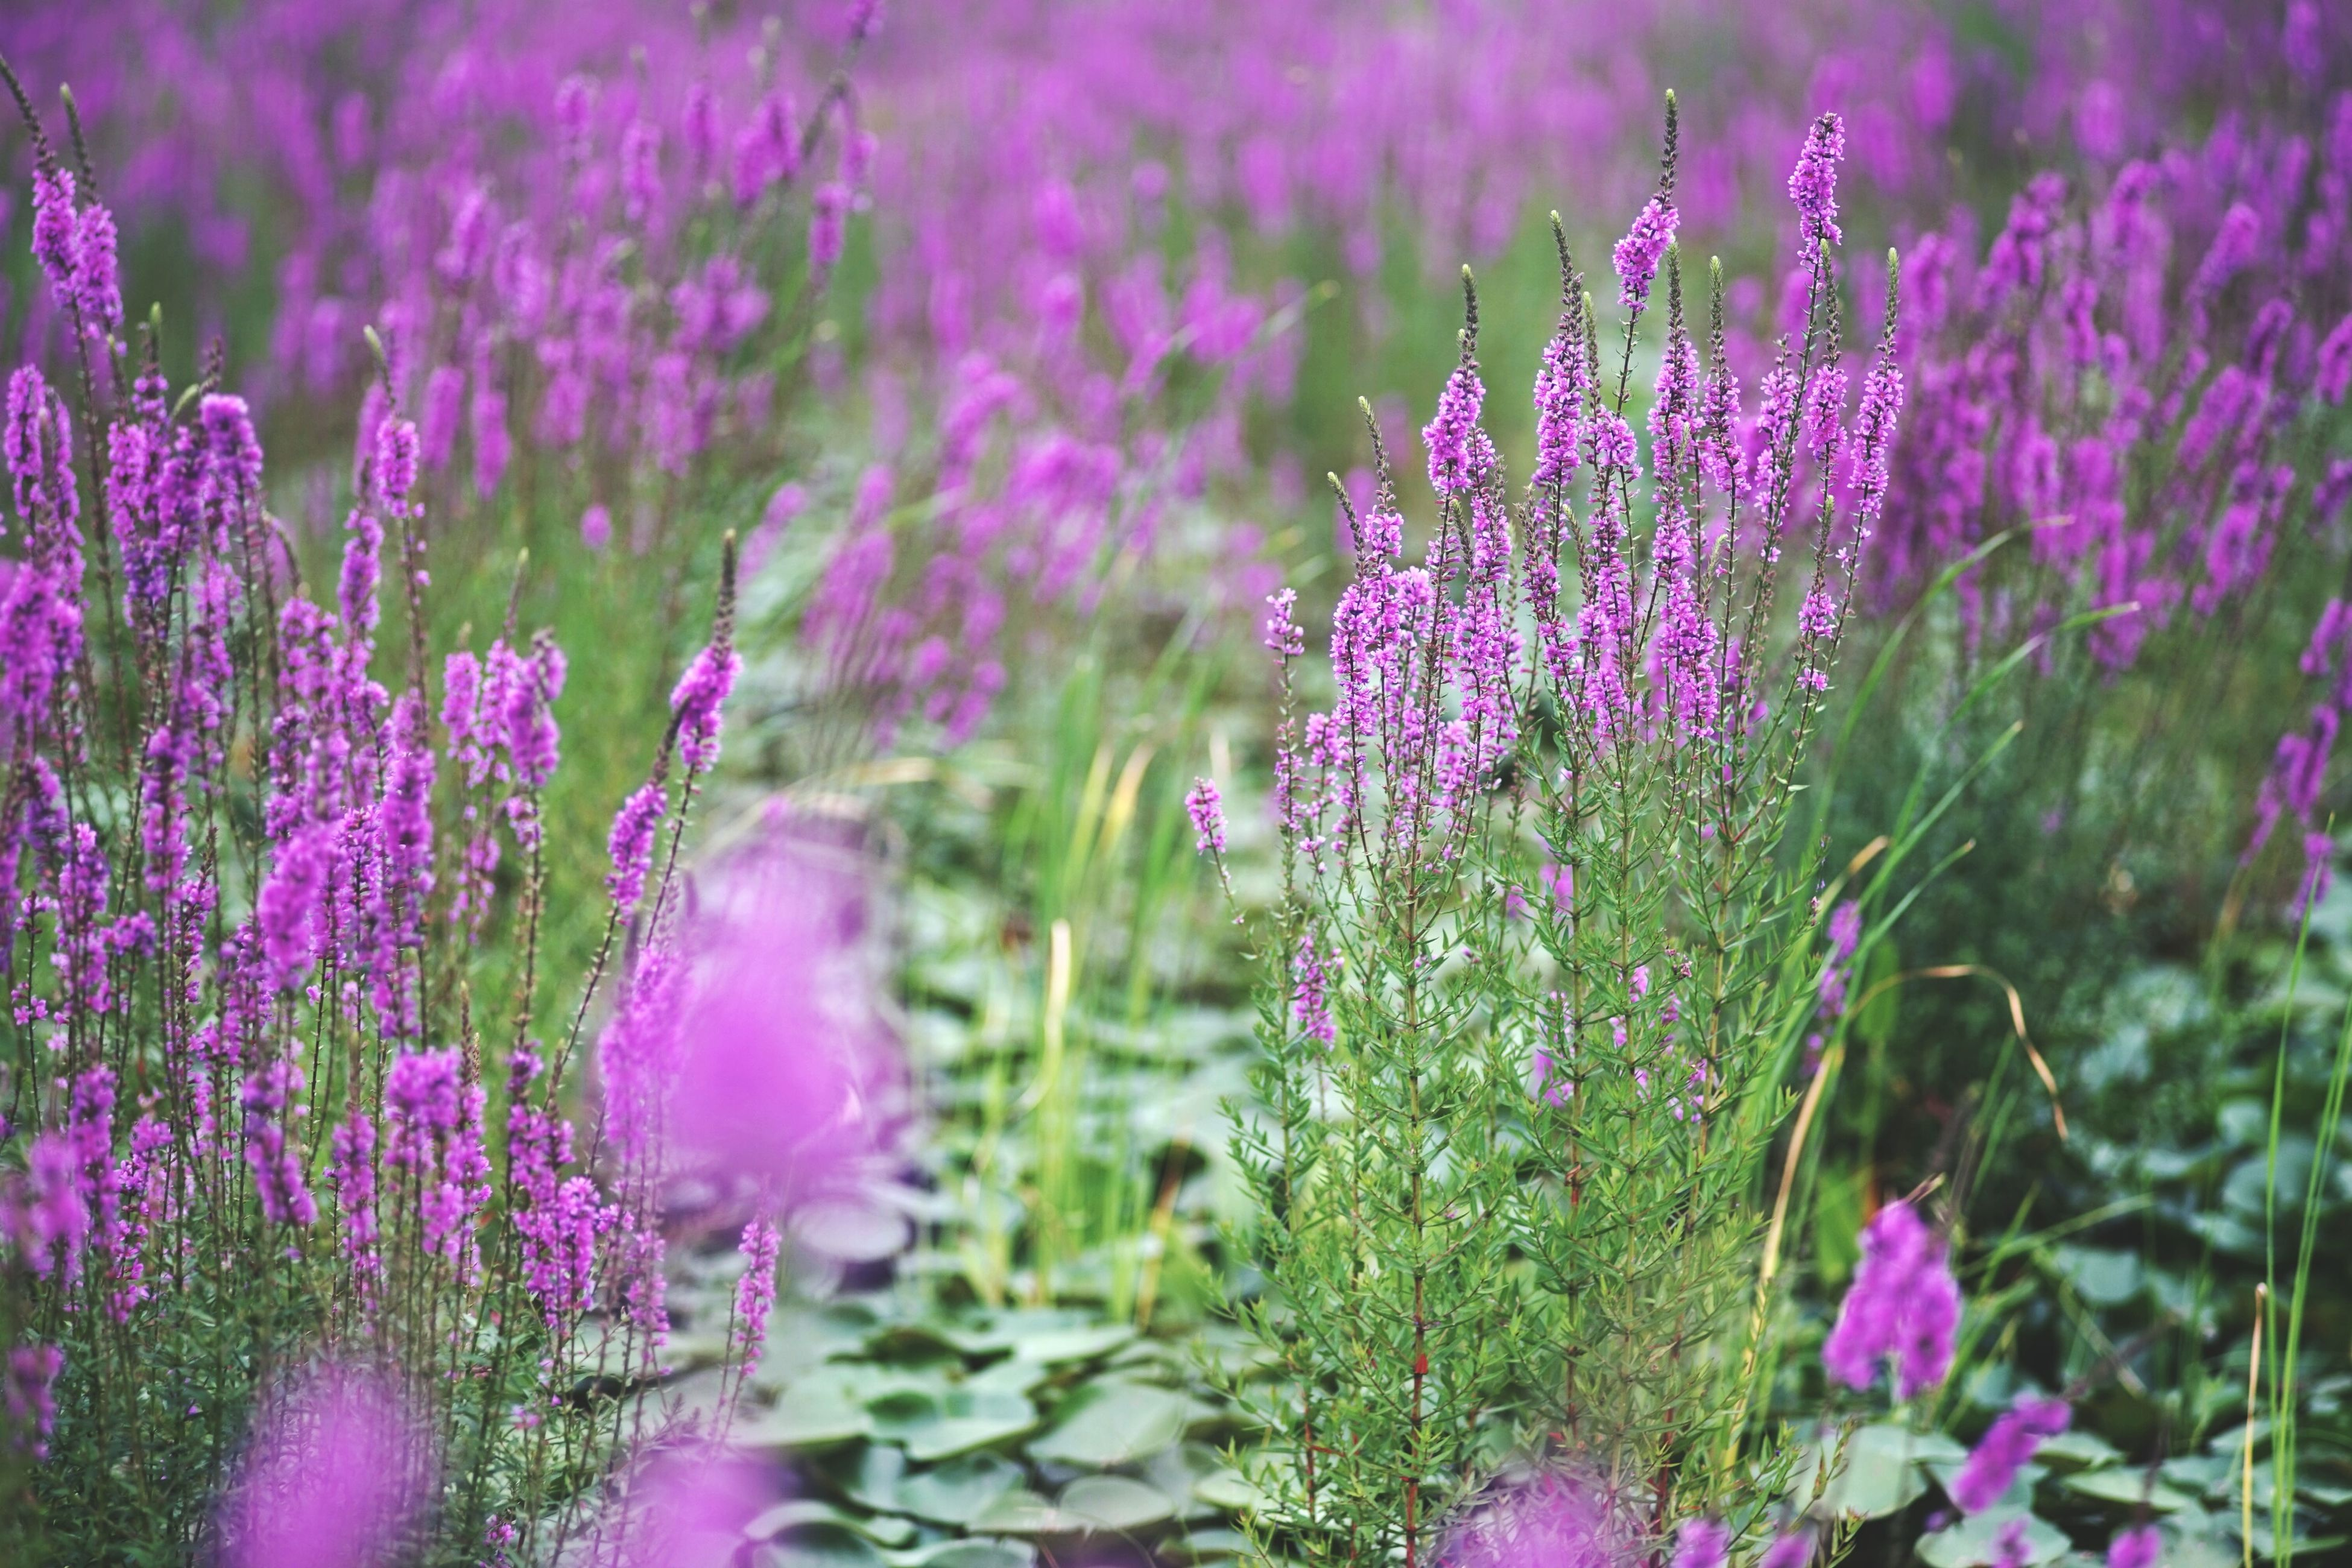 flower, freshness, purple, growth, fragility, beauty in nature, blooming, plant, pink color, nature, petal, in bloom, focus on foreground, field, flower head, close-up, stem, park - man made space, blossom, selective focus